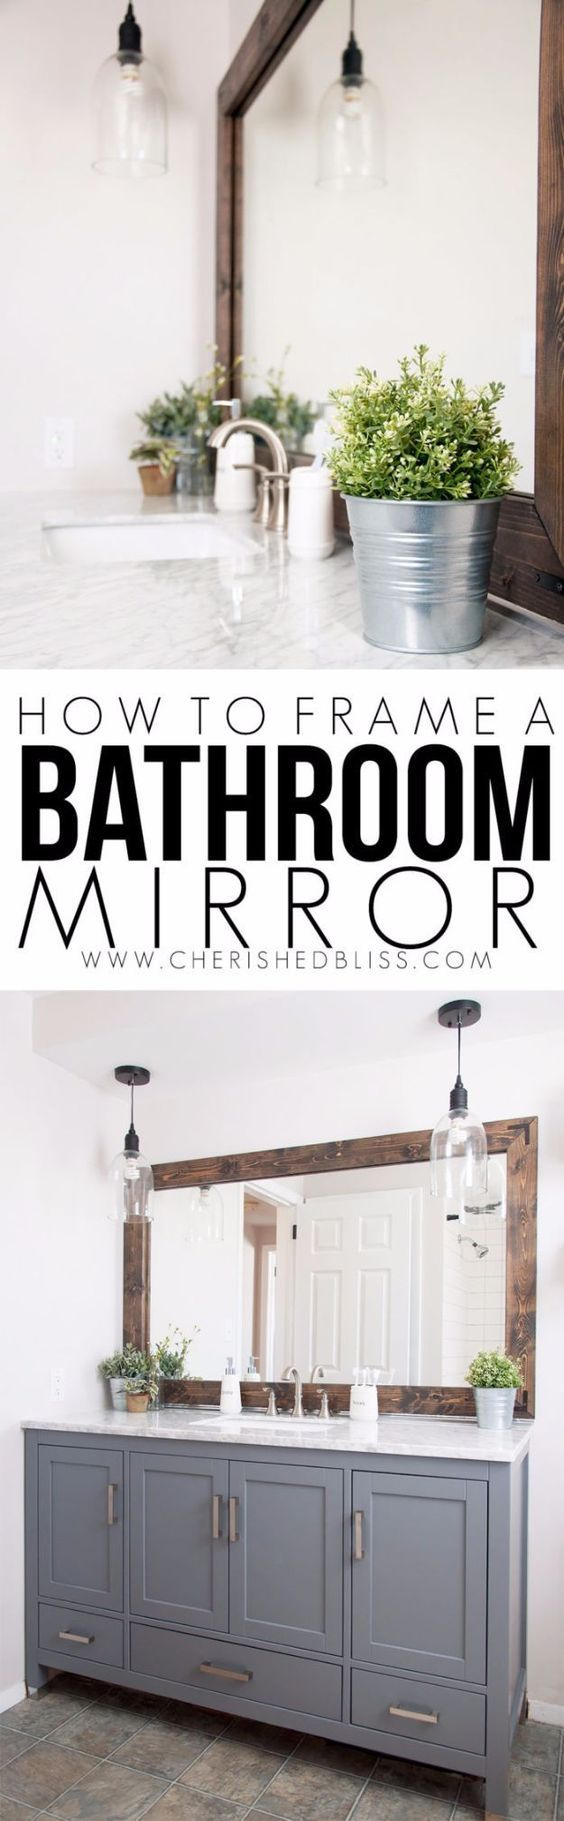 DIY Remodeling Hacks - Frame a Bathroom Mirror - Quick and Easy Home Repair Tips and Tricks - Cool Hacks for DIY Home Improvement Ideas - Cheap Ways To Fix Bathroom, Bedroom, Kitchen, Outdoor, Living Room and Lighting - Creative Renovation on A Budget - D